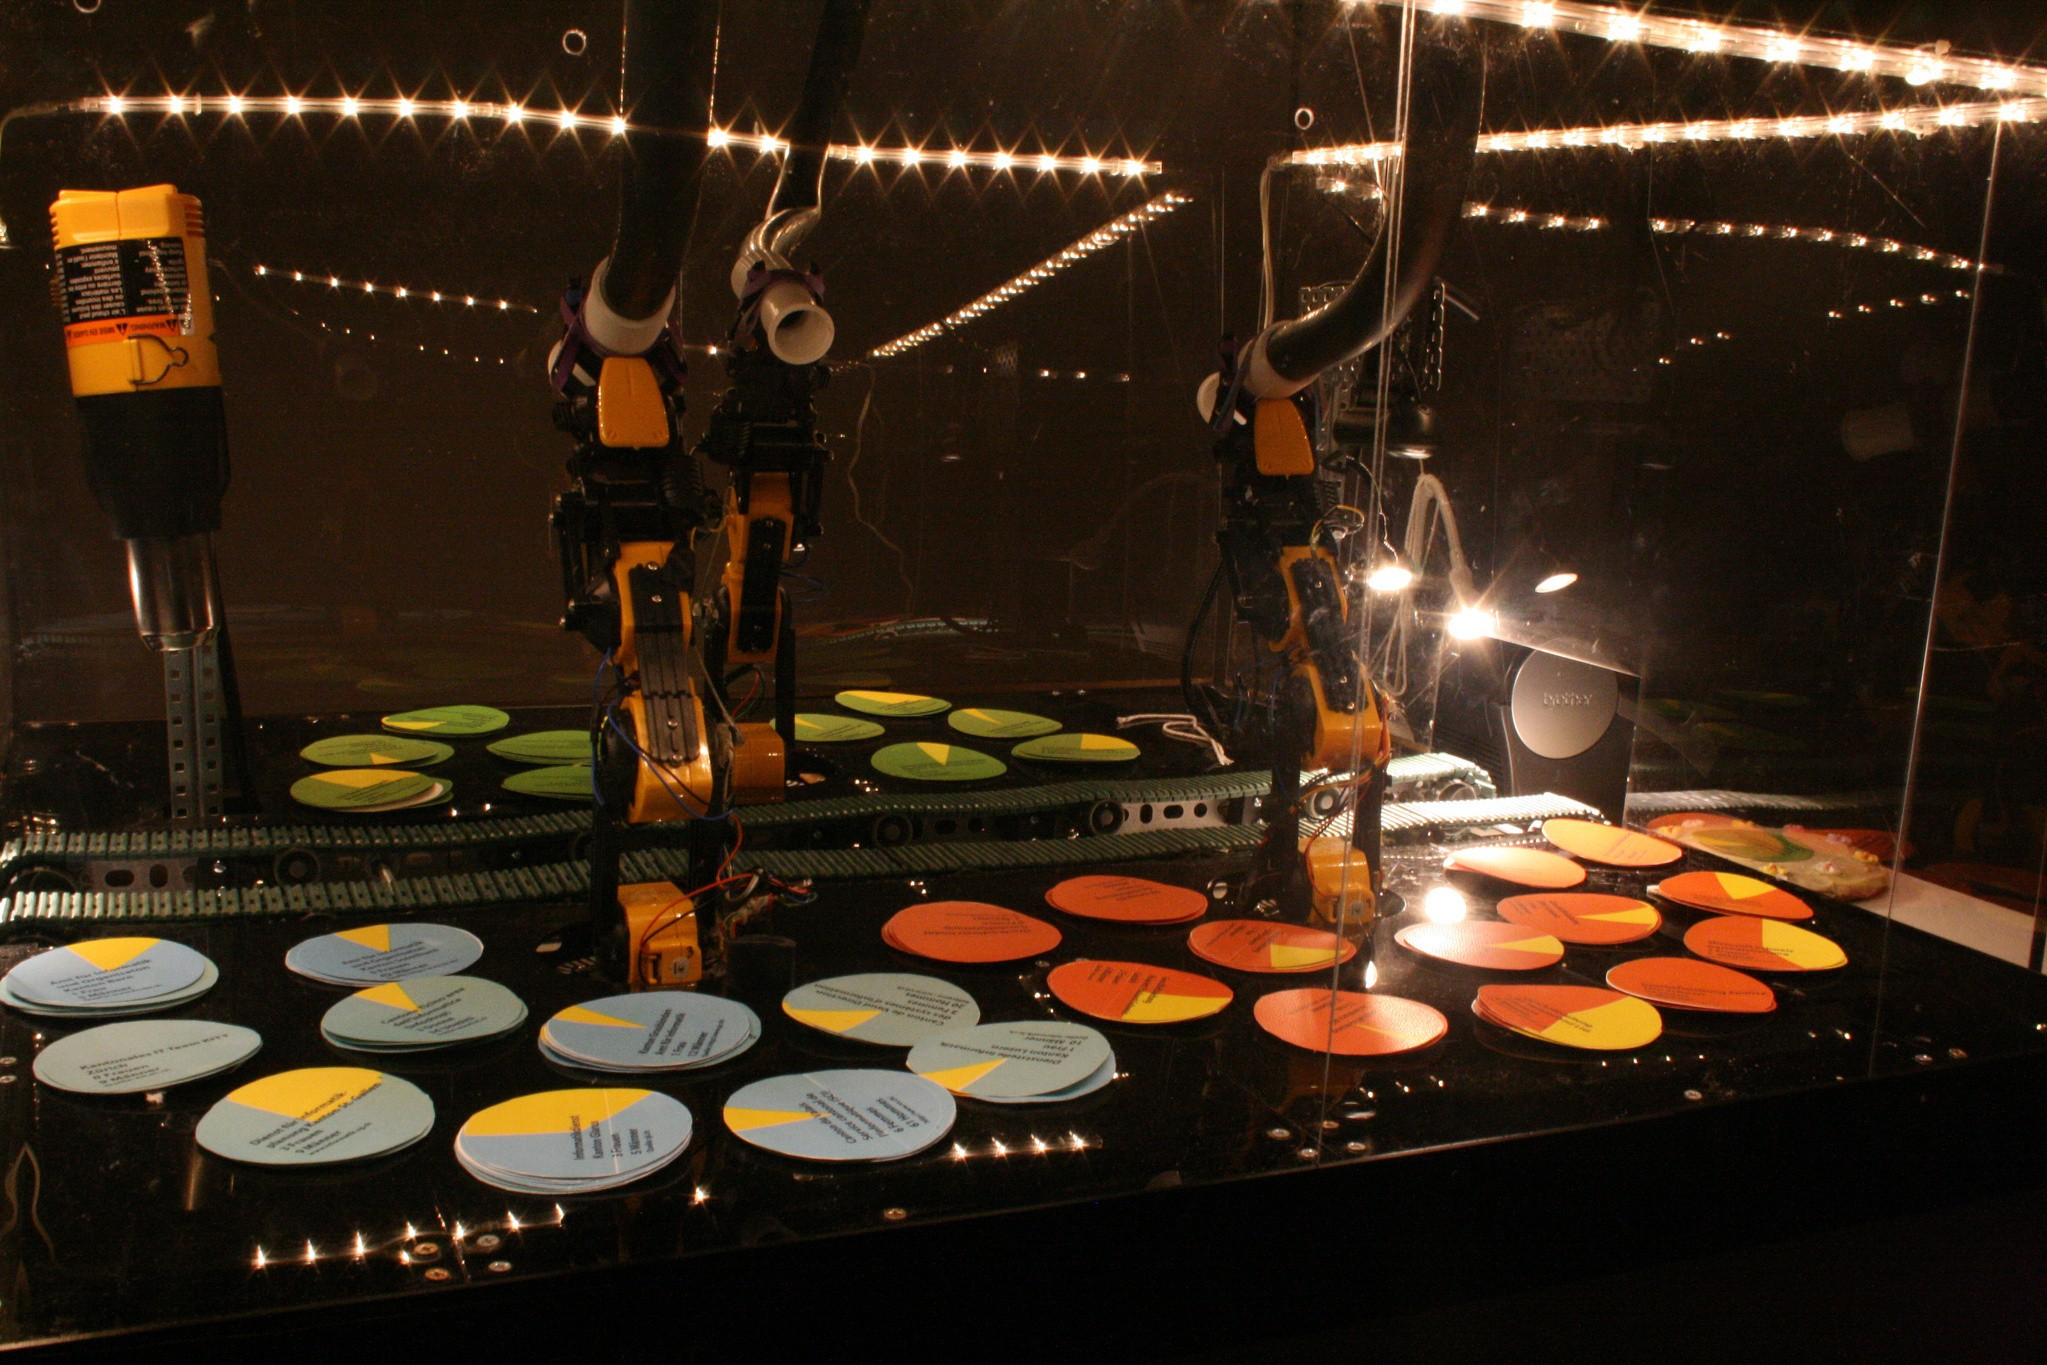 A Robot That Puts Pie Charts Onto Actual Pies